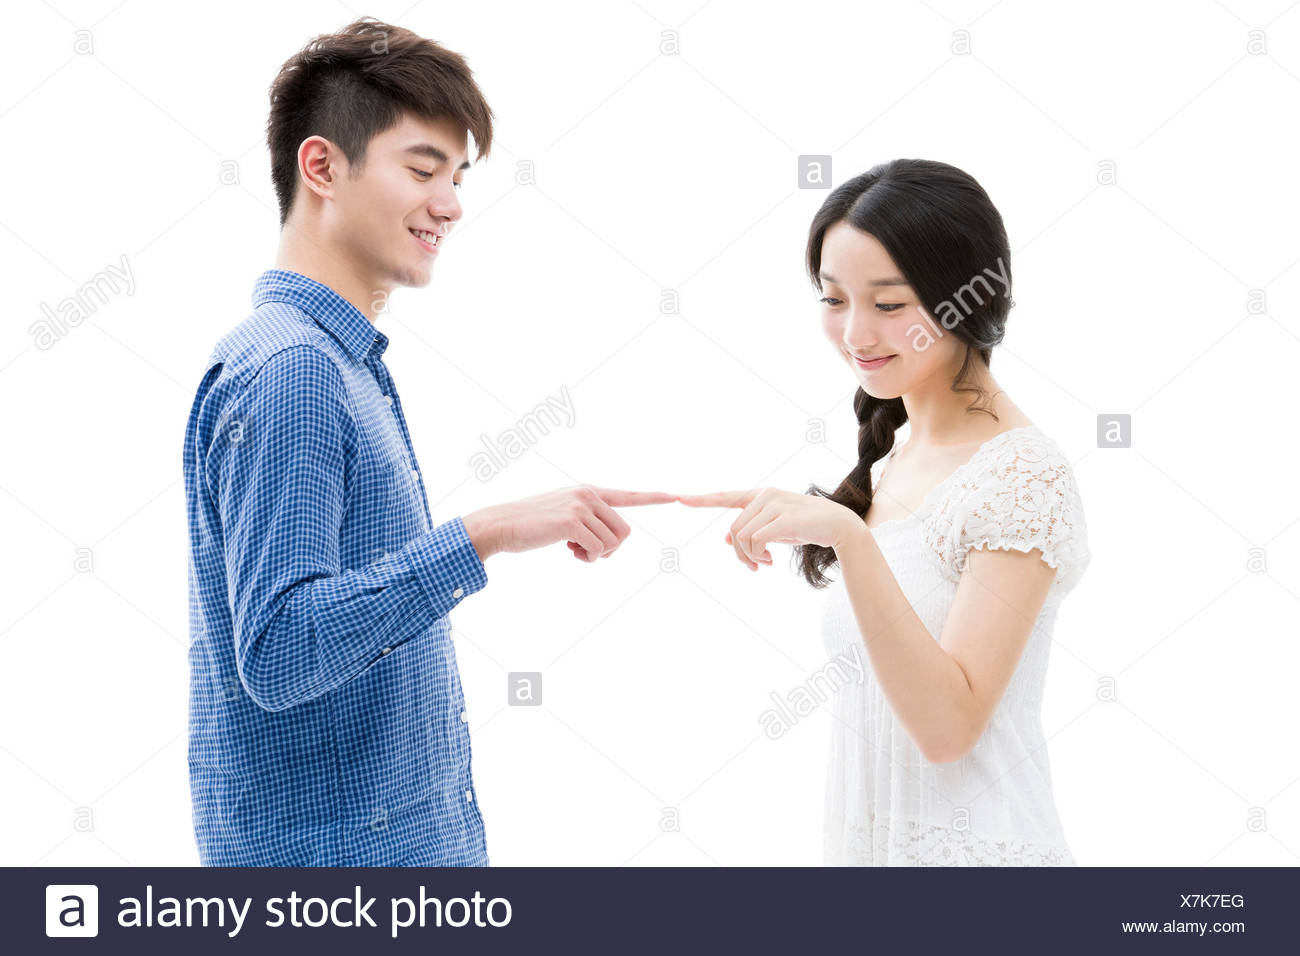 Happy young couple's fingers touching each other - Stock Image